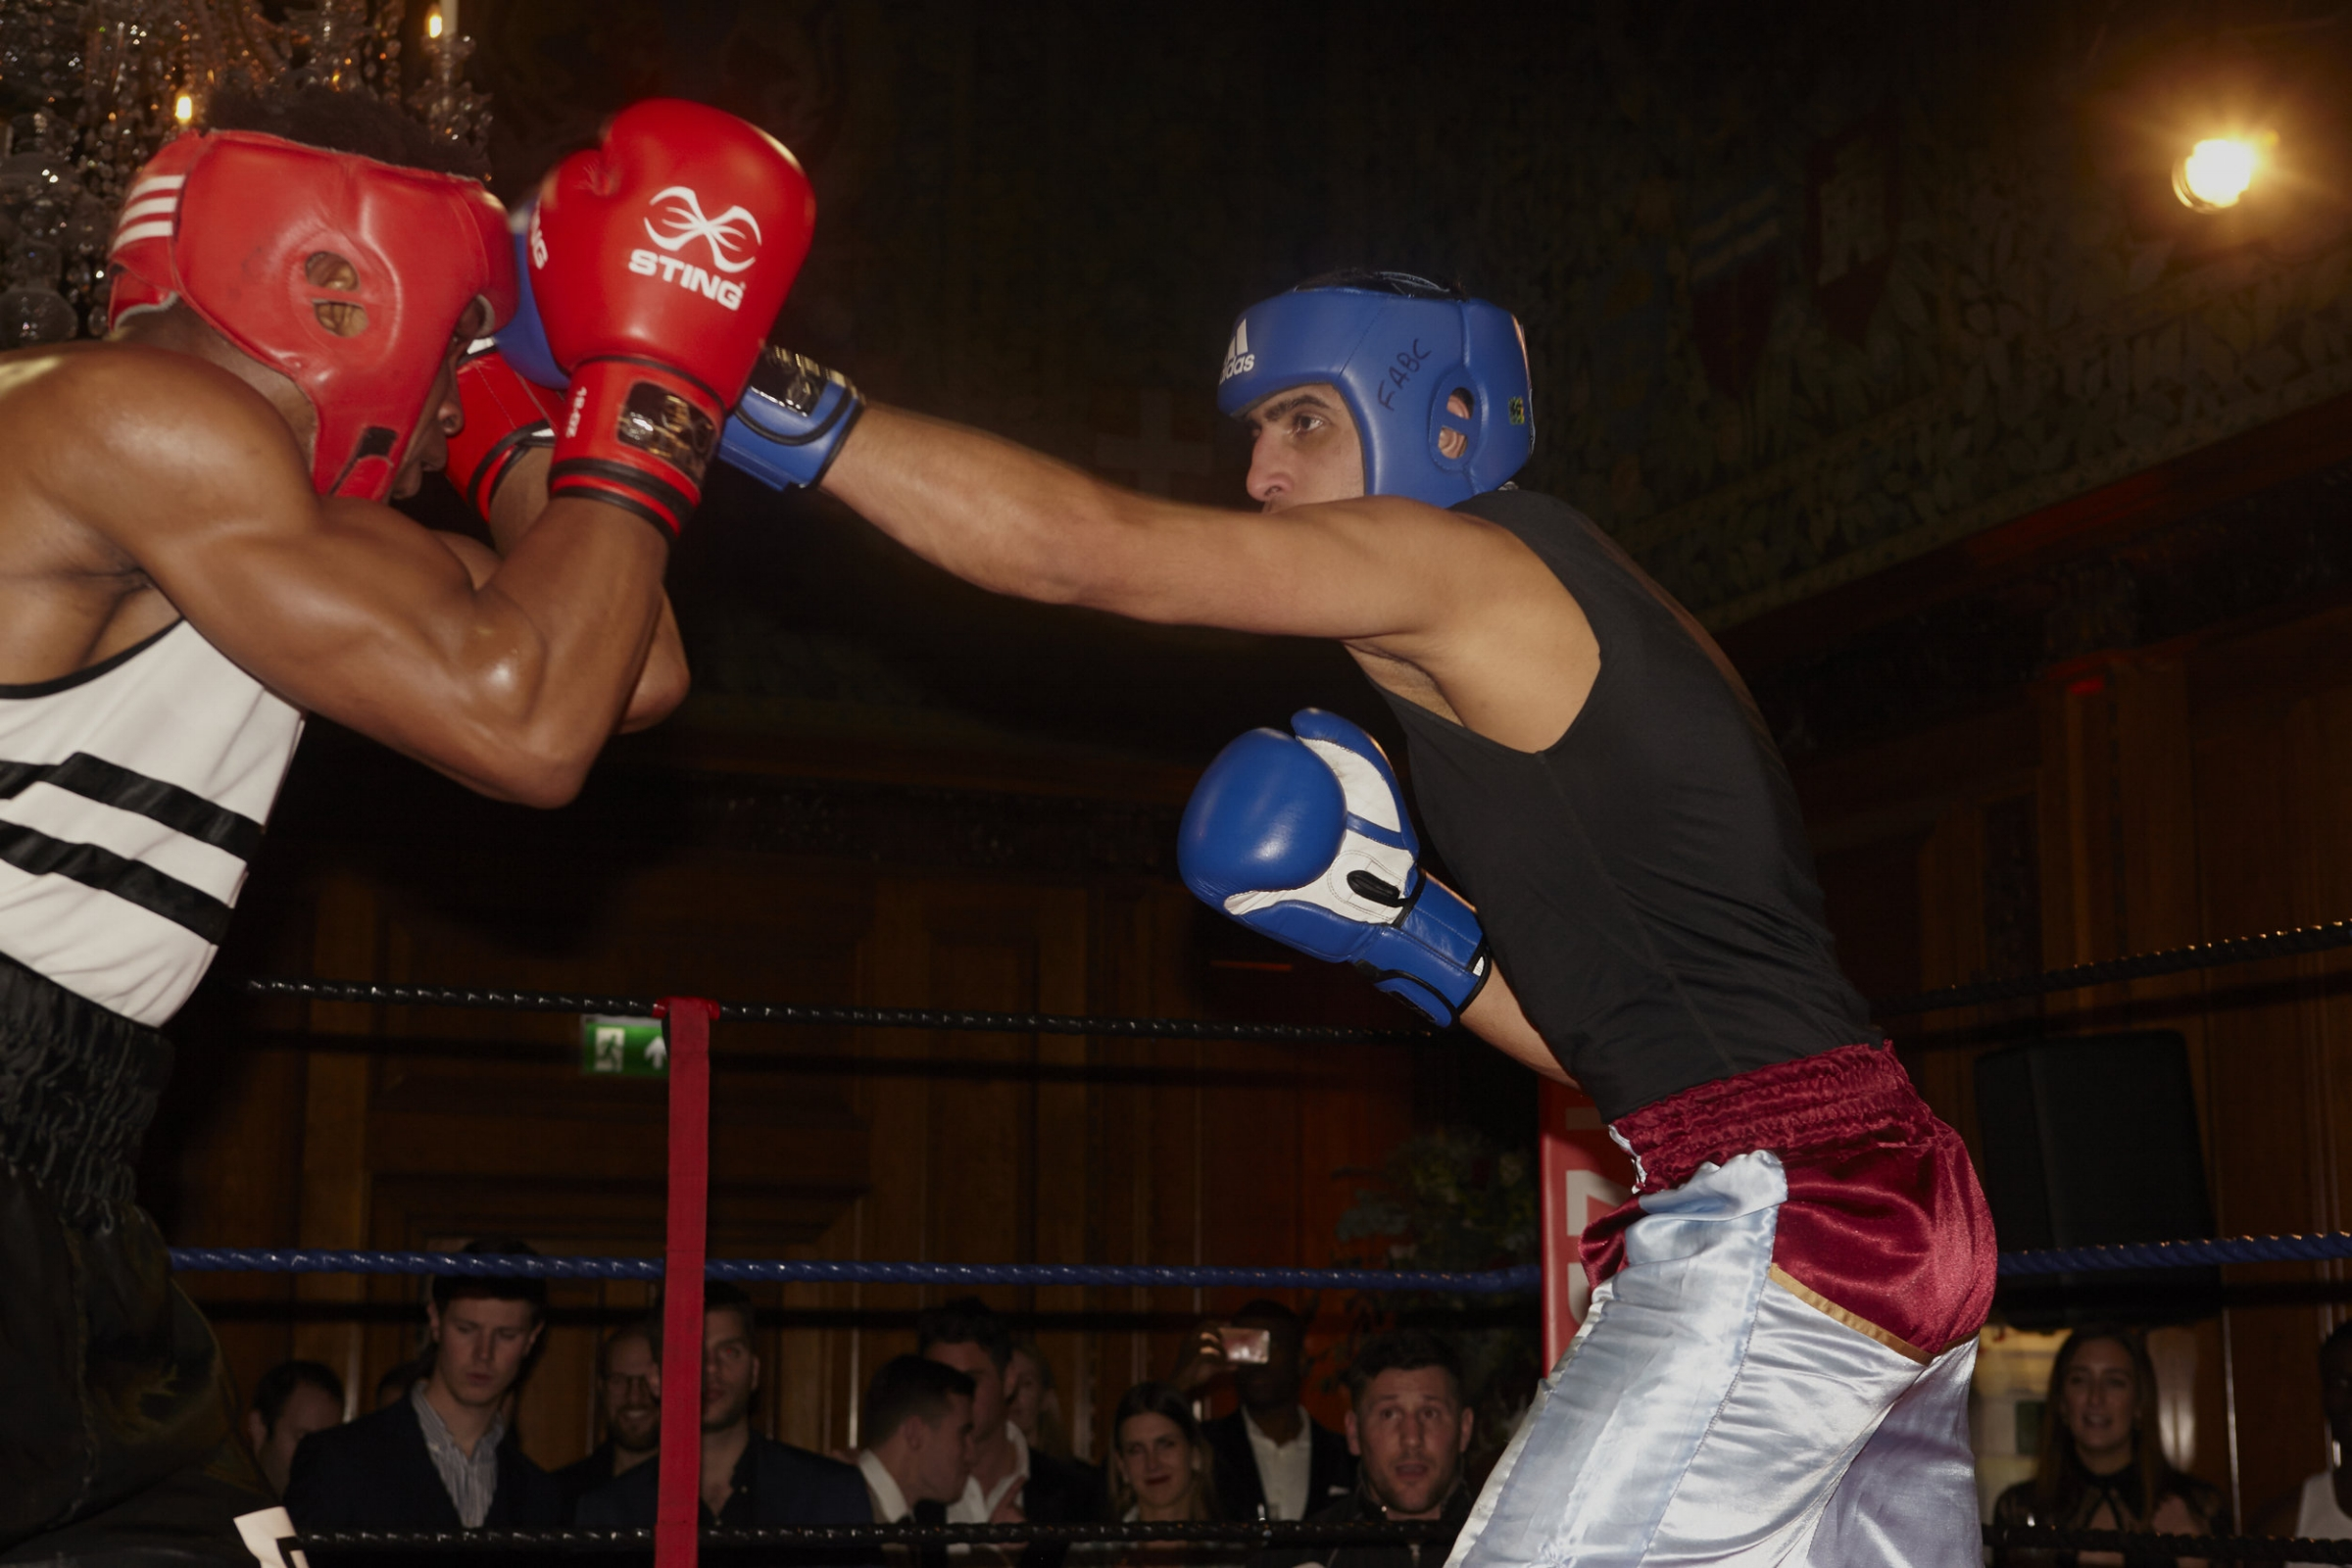 In the third bout, Lewsey's Shafqat Khan fires a long jab at Fitzroy Lodge's Tosin Olalekan